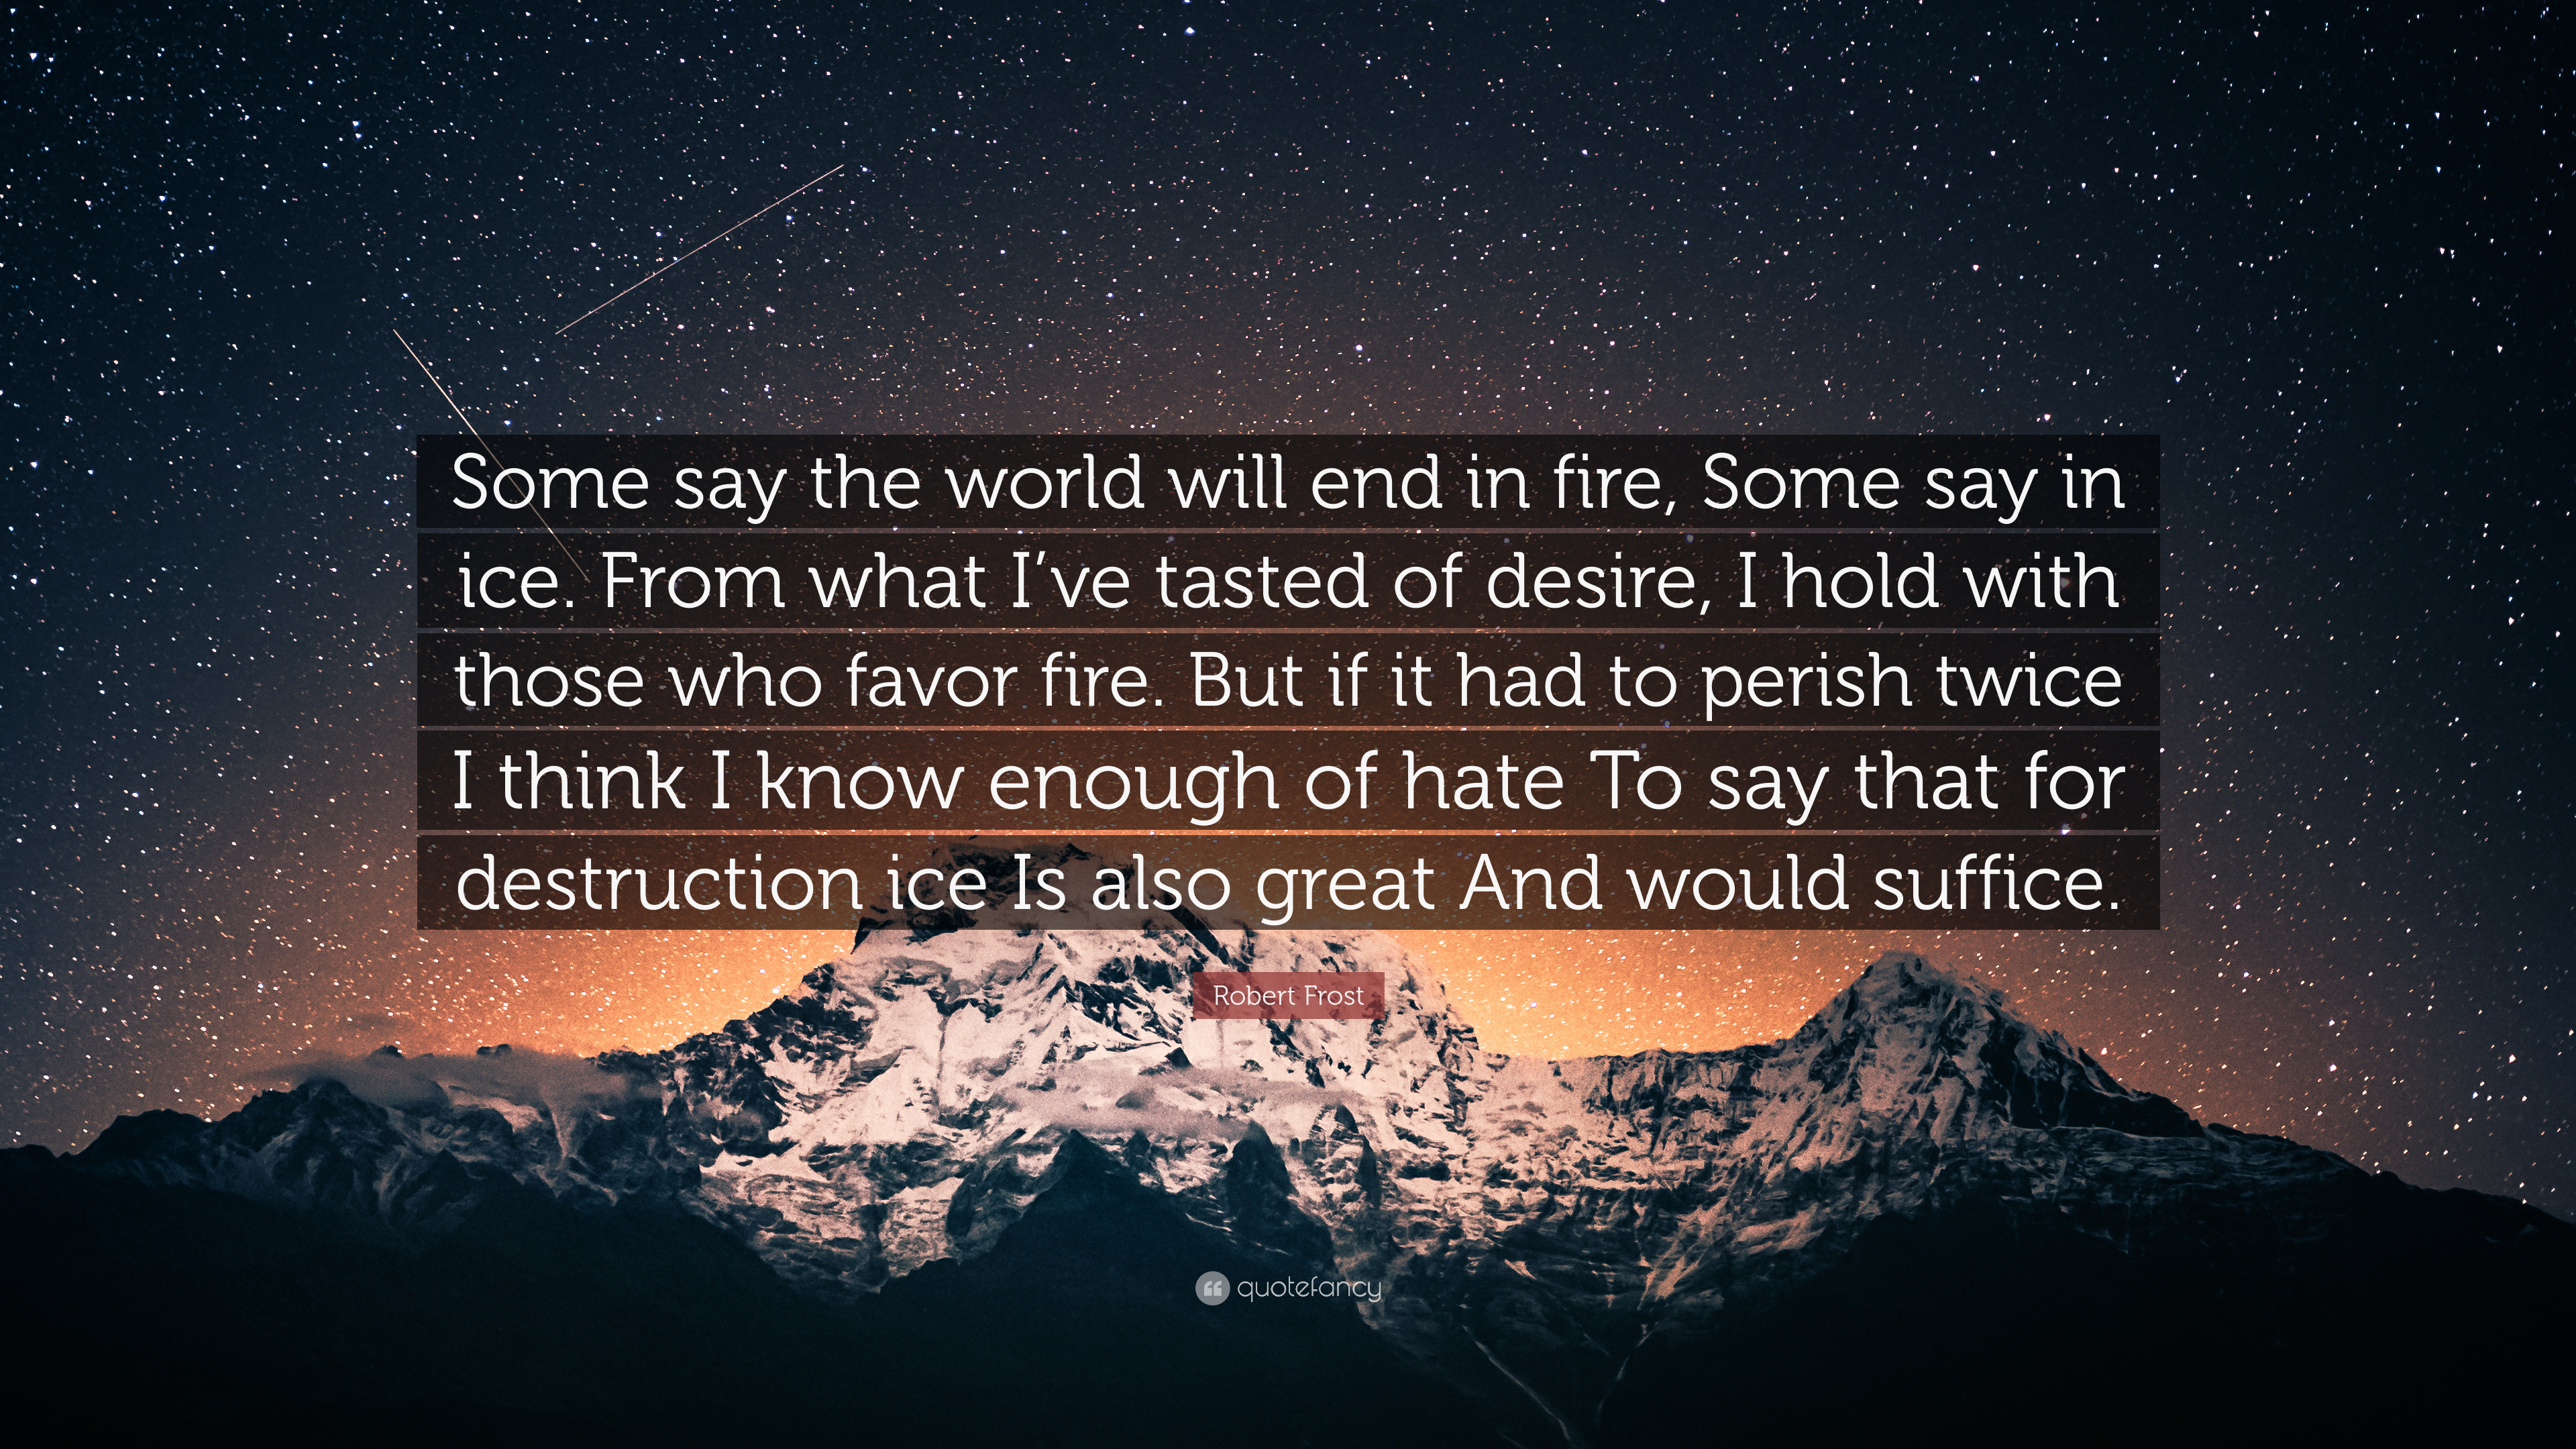 2035807-robert-frost-quote-some-say-the-world-will-end-in-fire-some-say-in